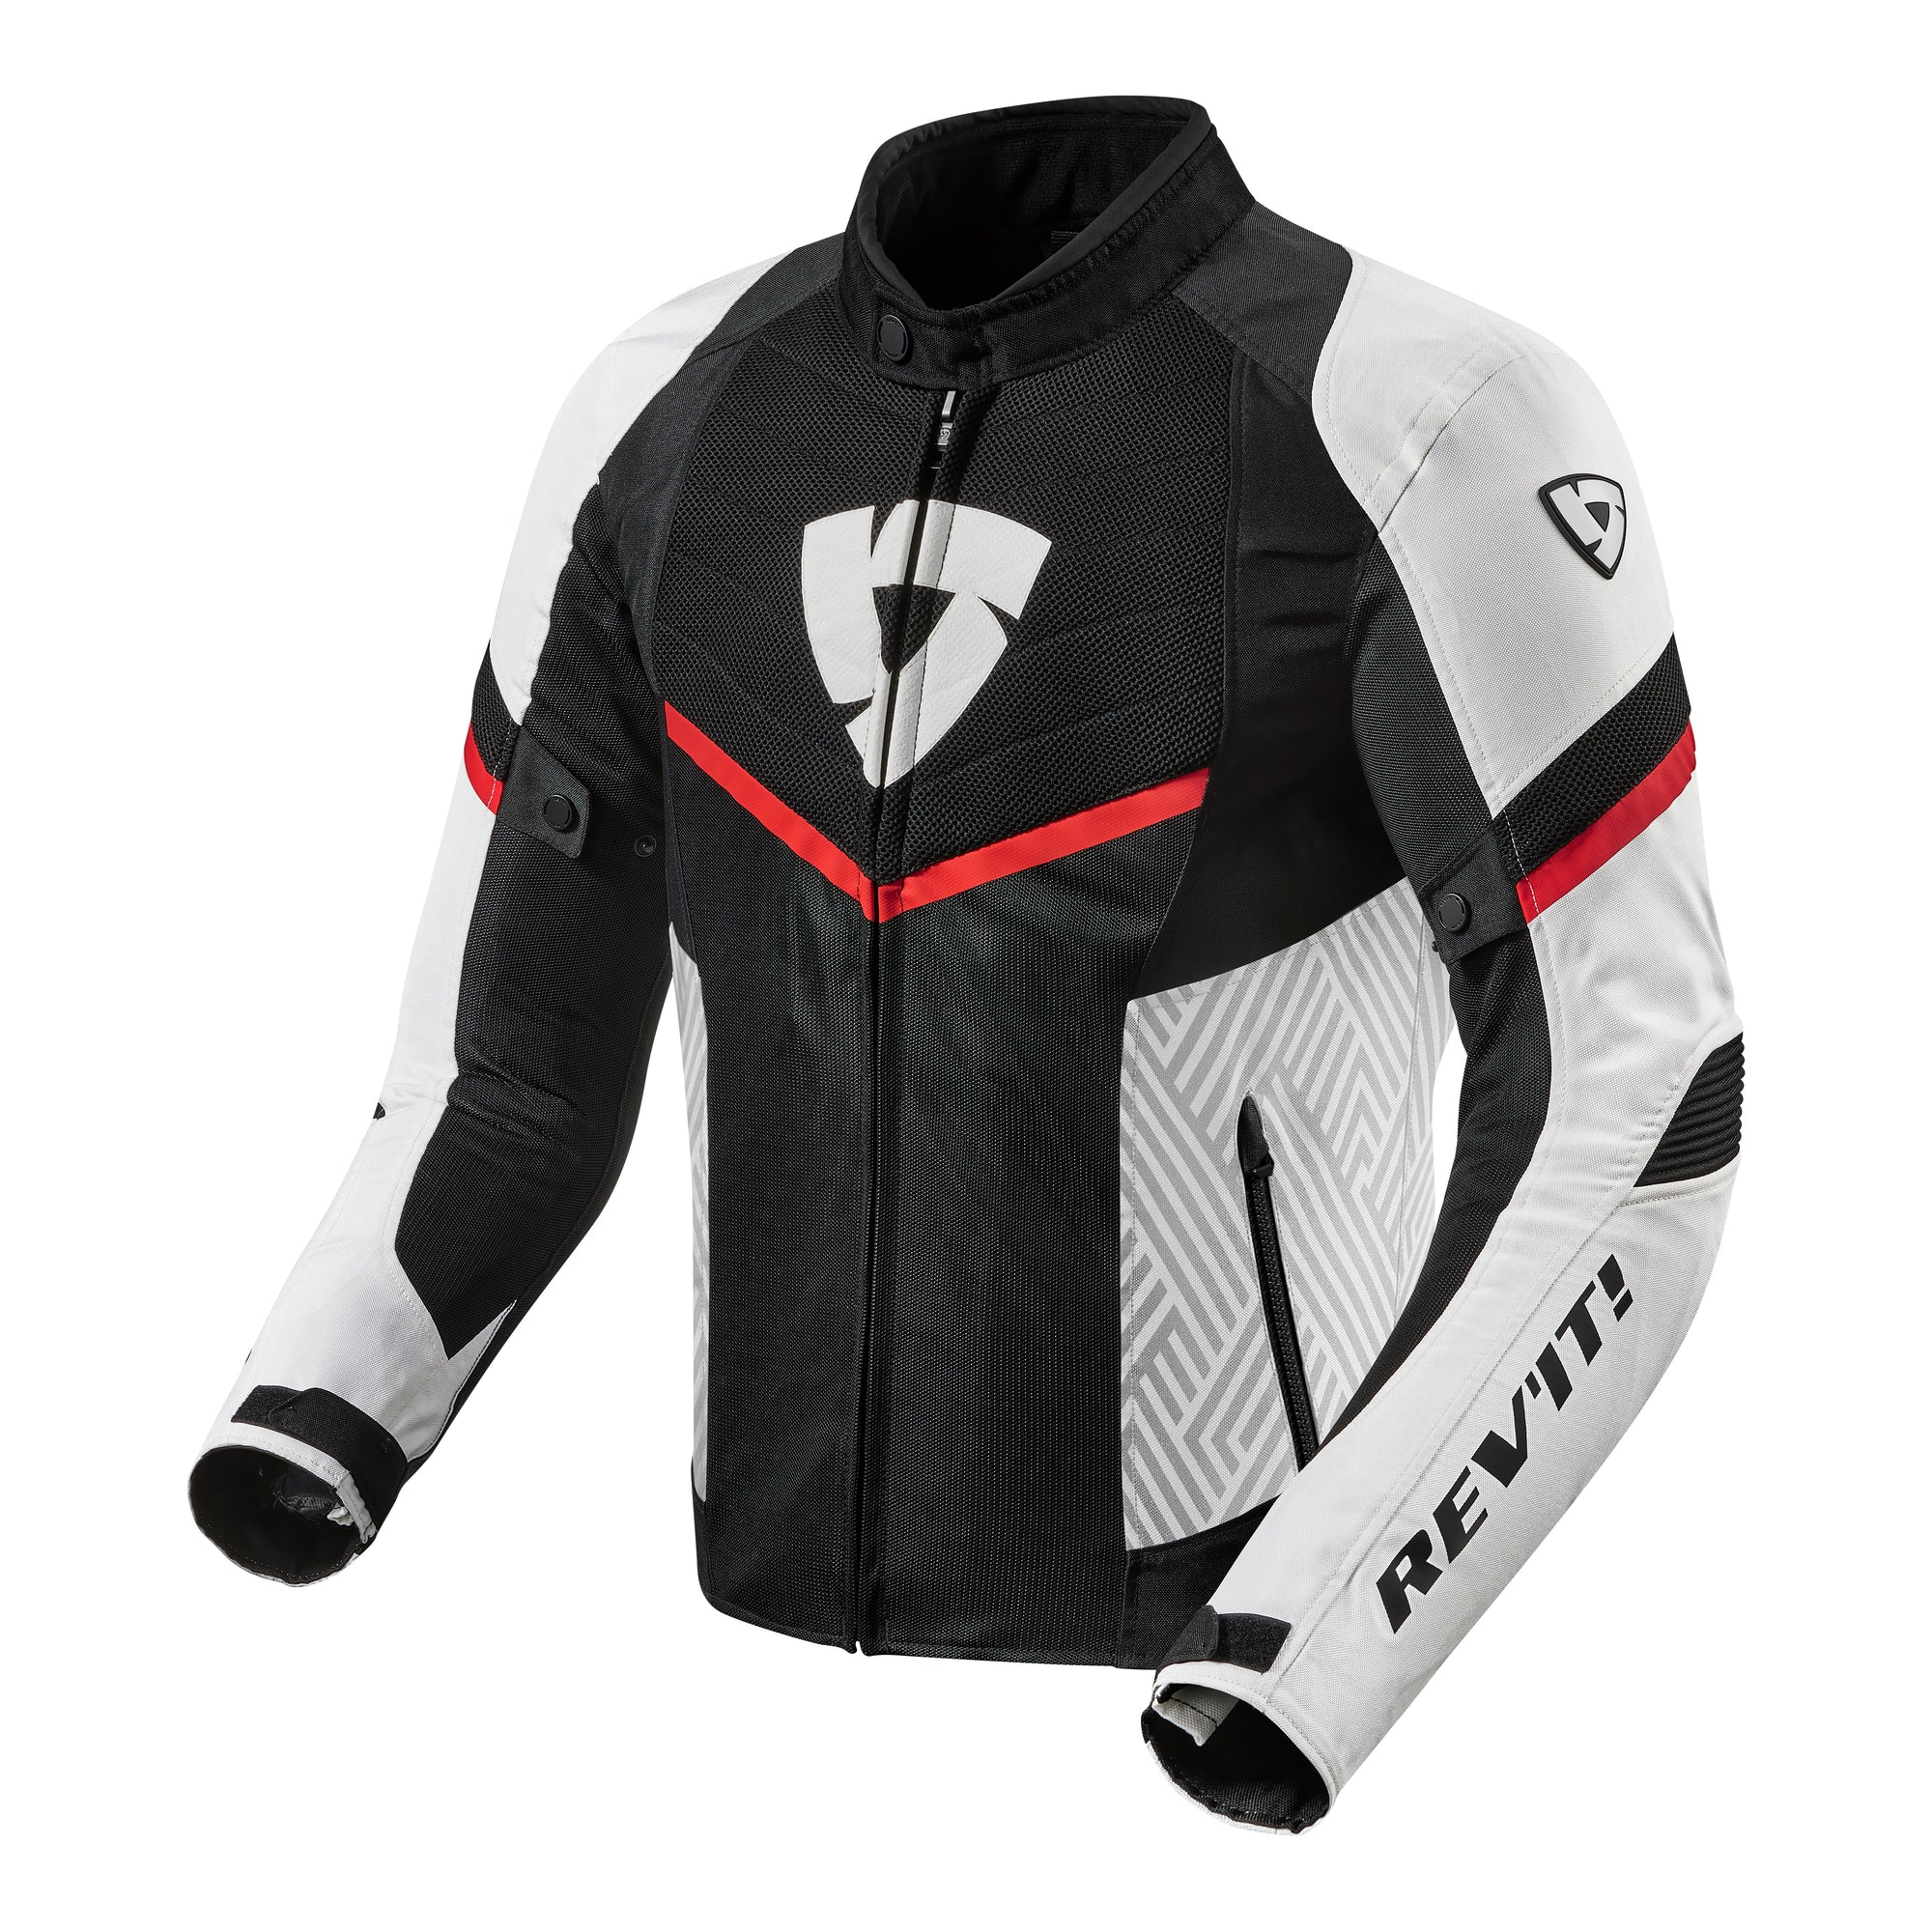 REV'IT! Arc Air Men's Jacket - 421 Moto Gear